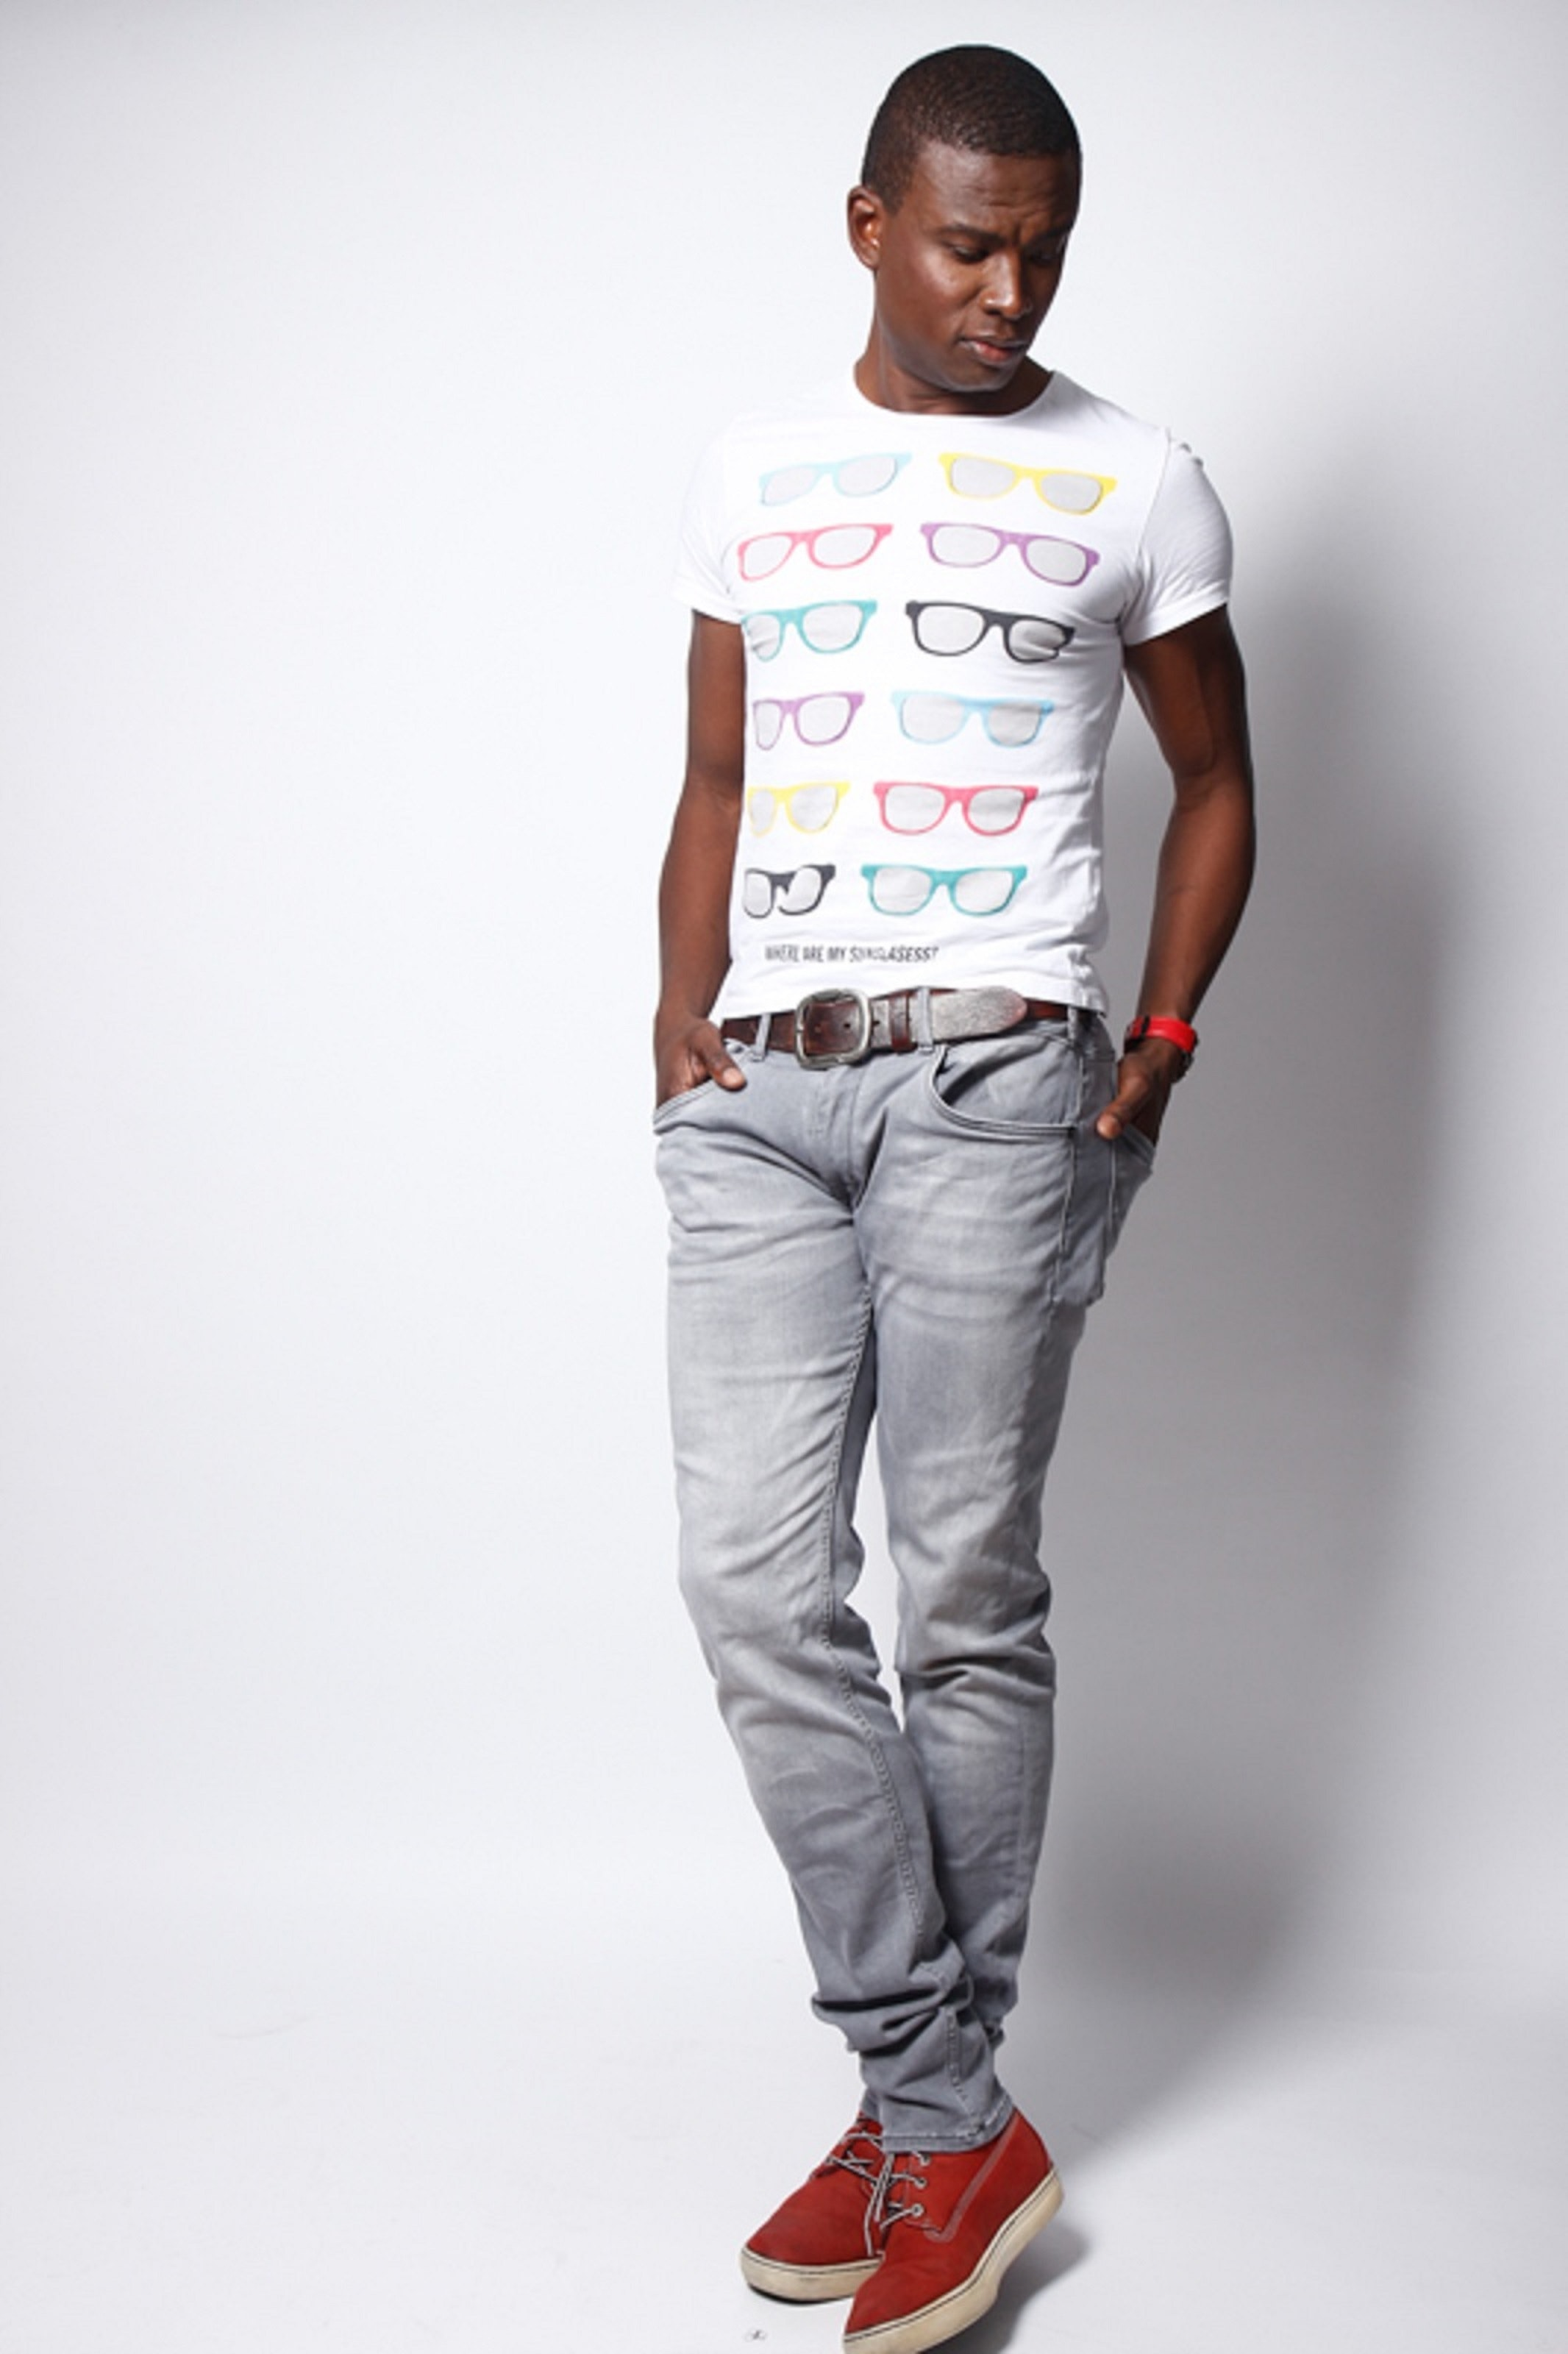 3ff525224bb38e Man Wearing White Crew-neck T-shirt and Gray Pants Outfit · Free ...